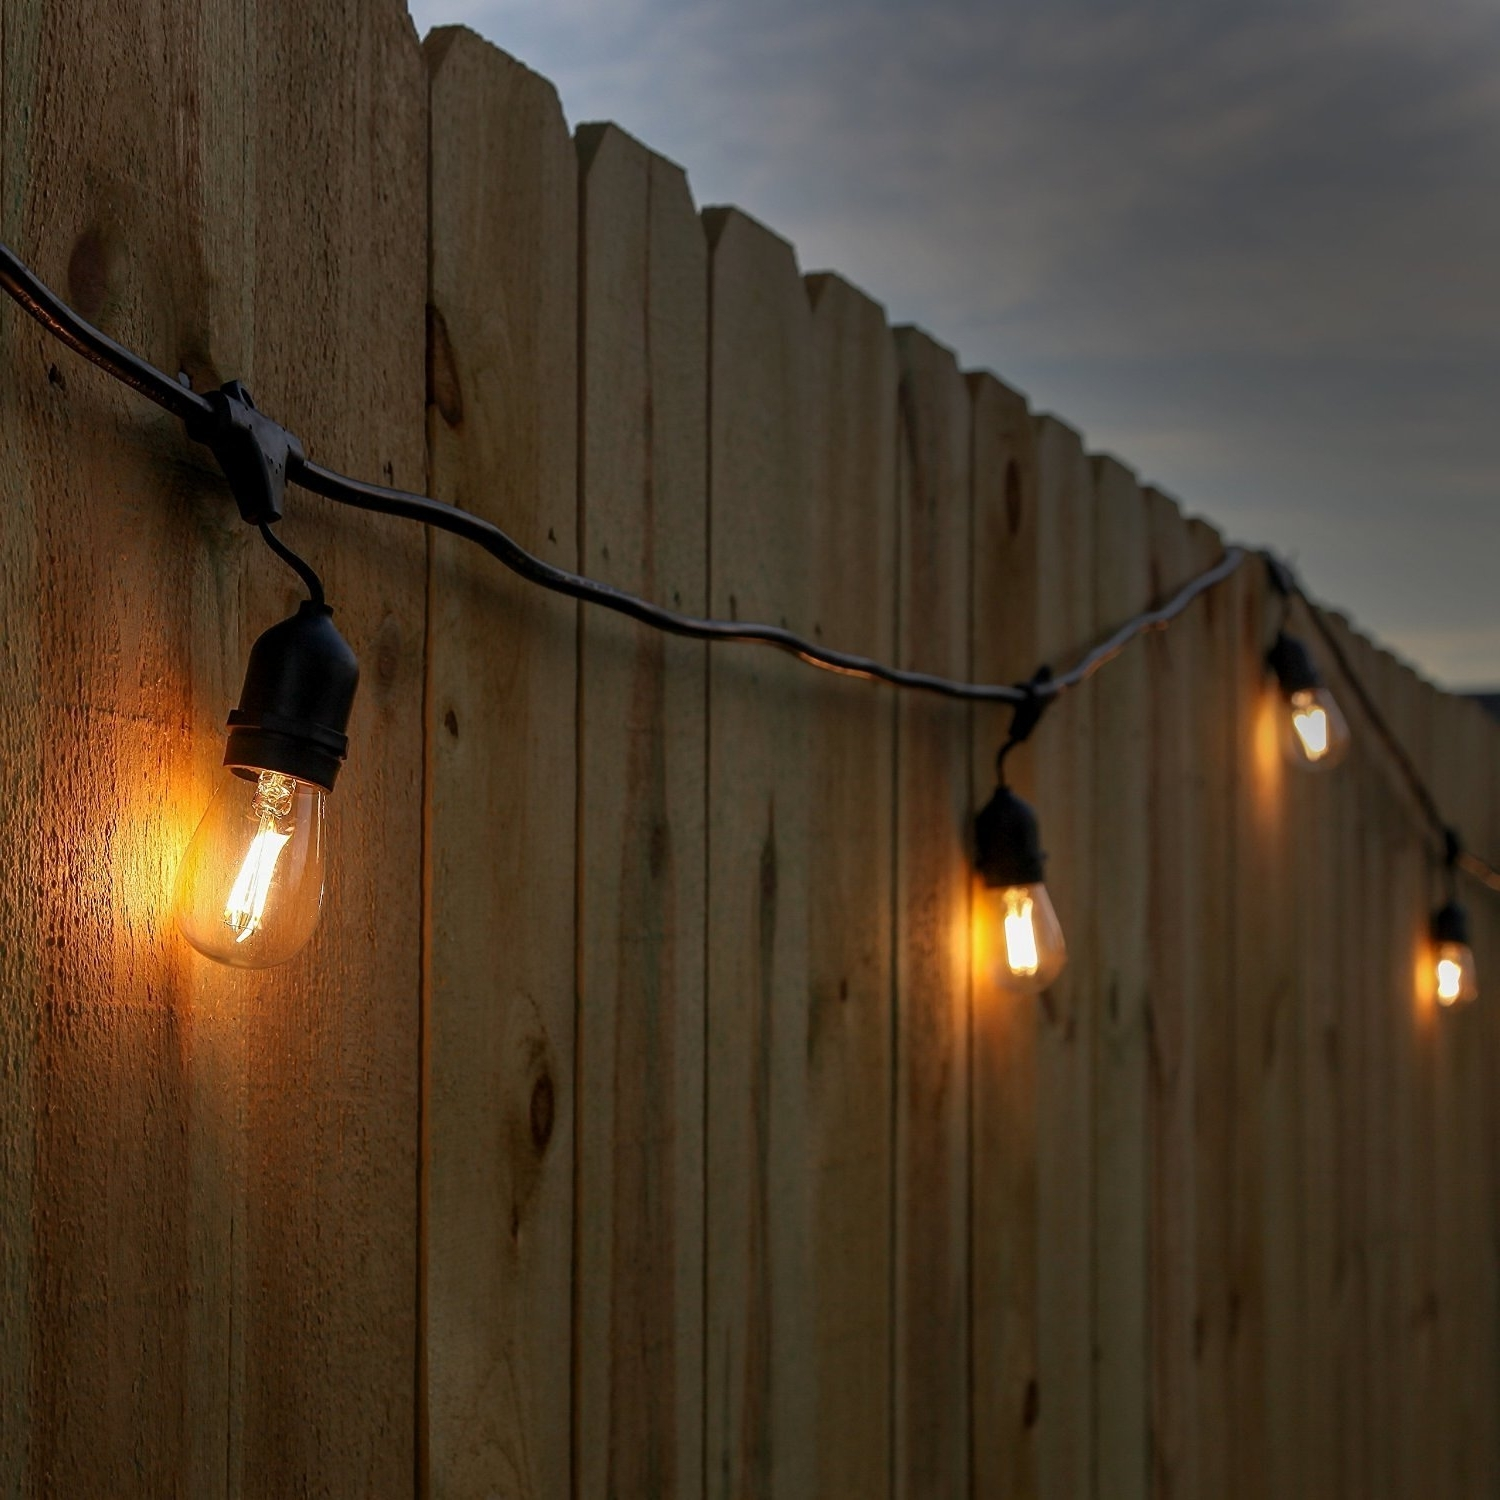 2018 Best of Modern Outdoor String Lights